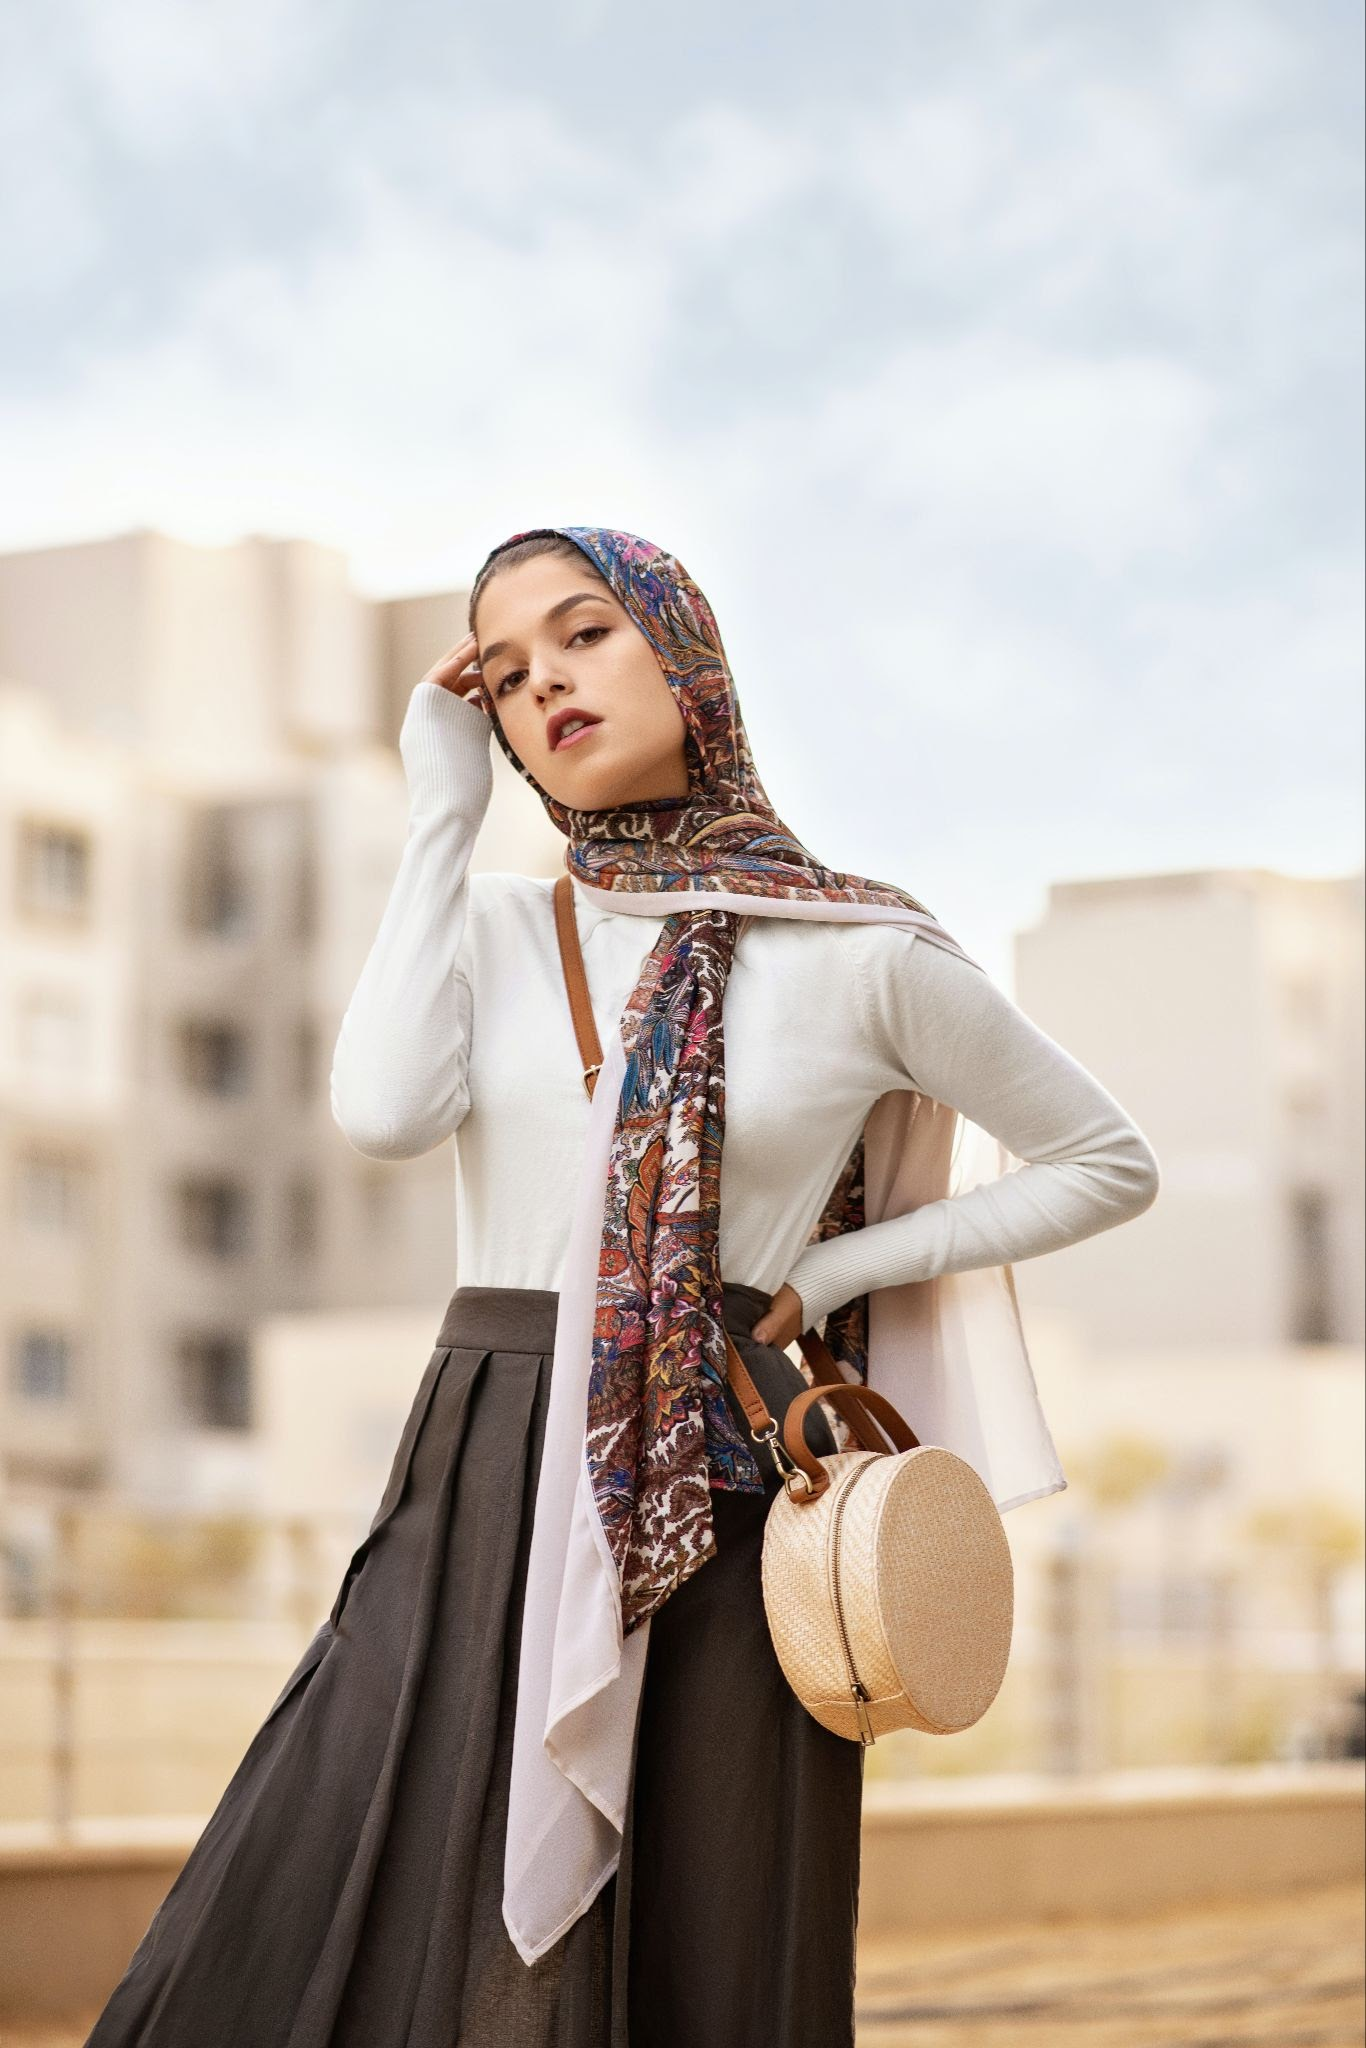 A woman creating a statement look with layered headscarves